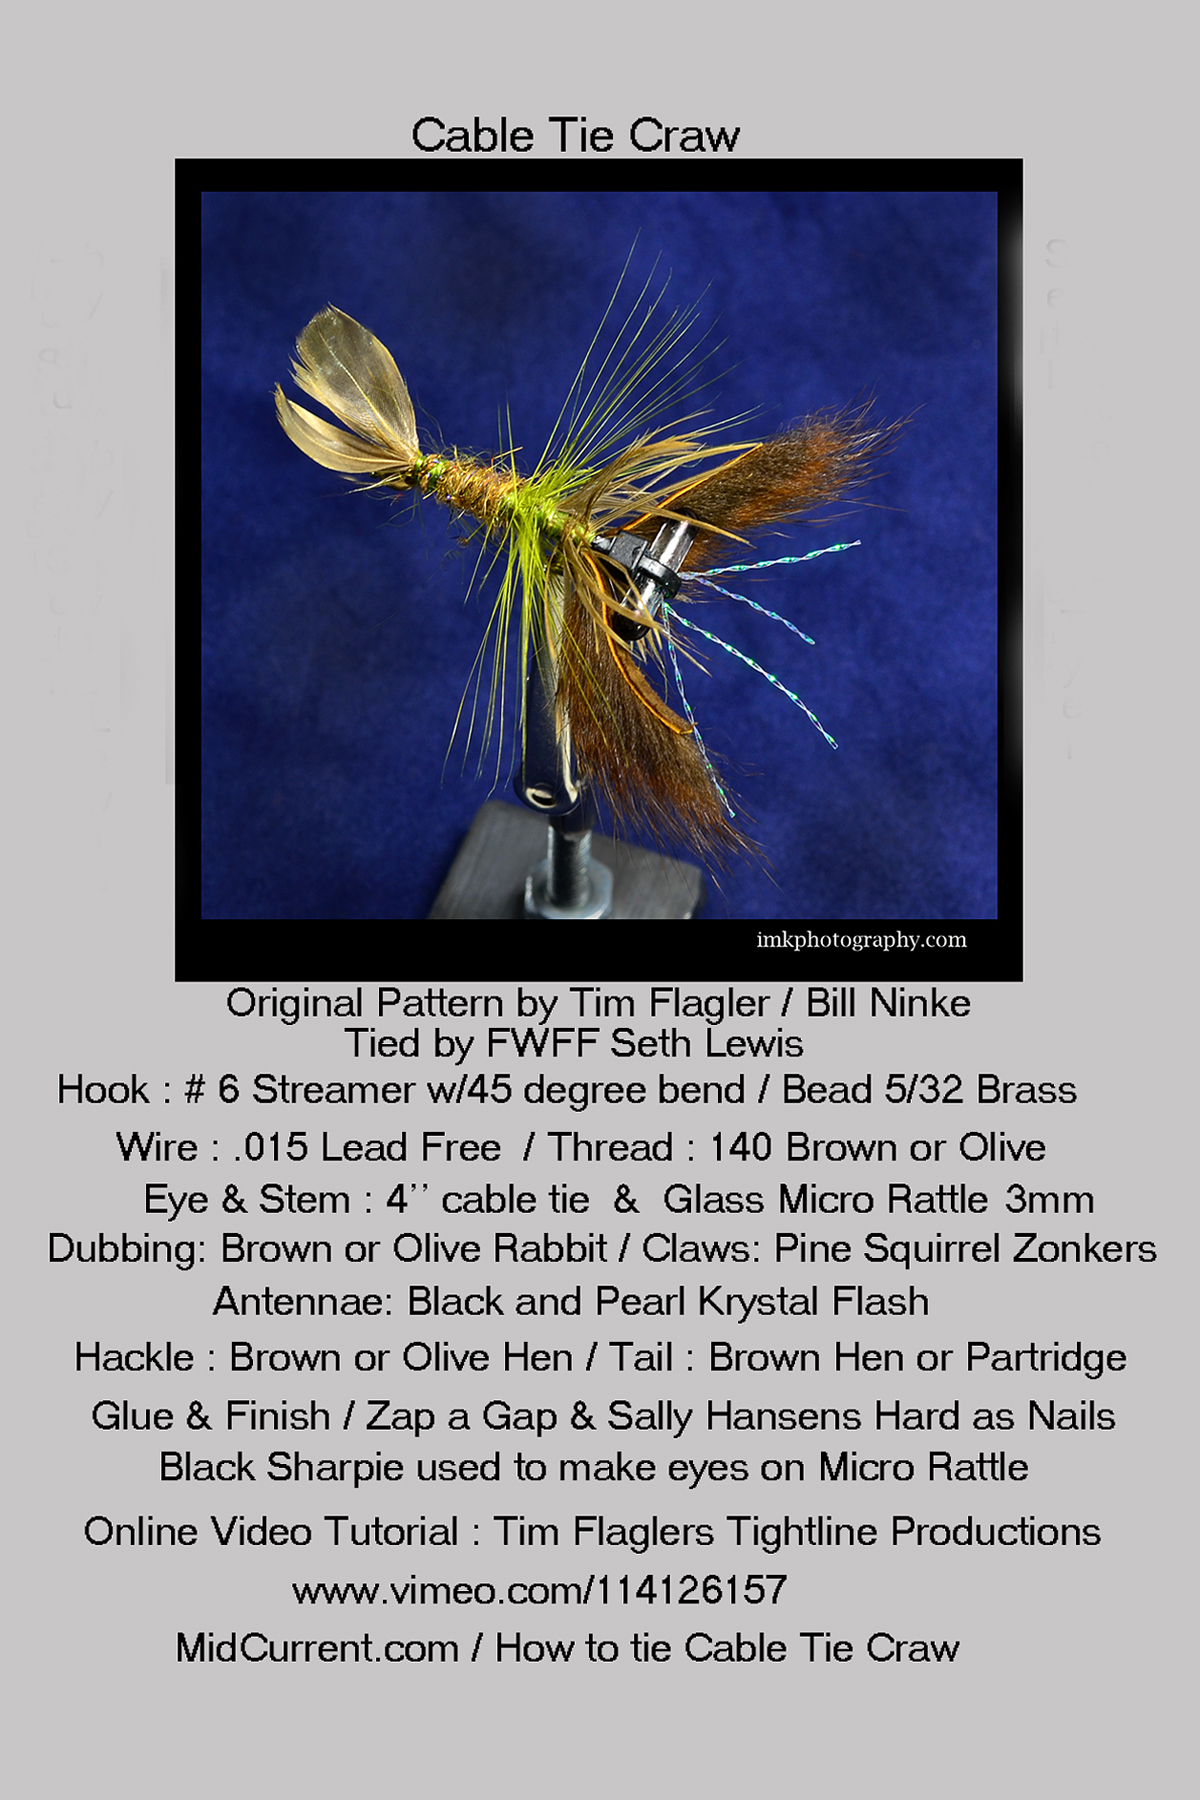 IMK_6983 Cable Tie Craw 4x6 card